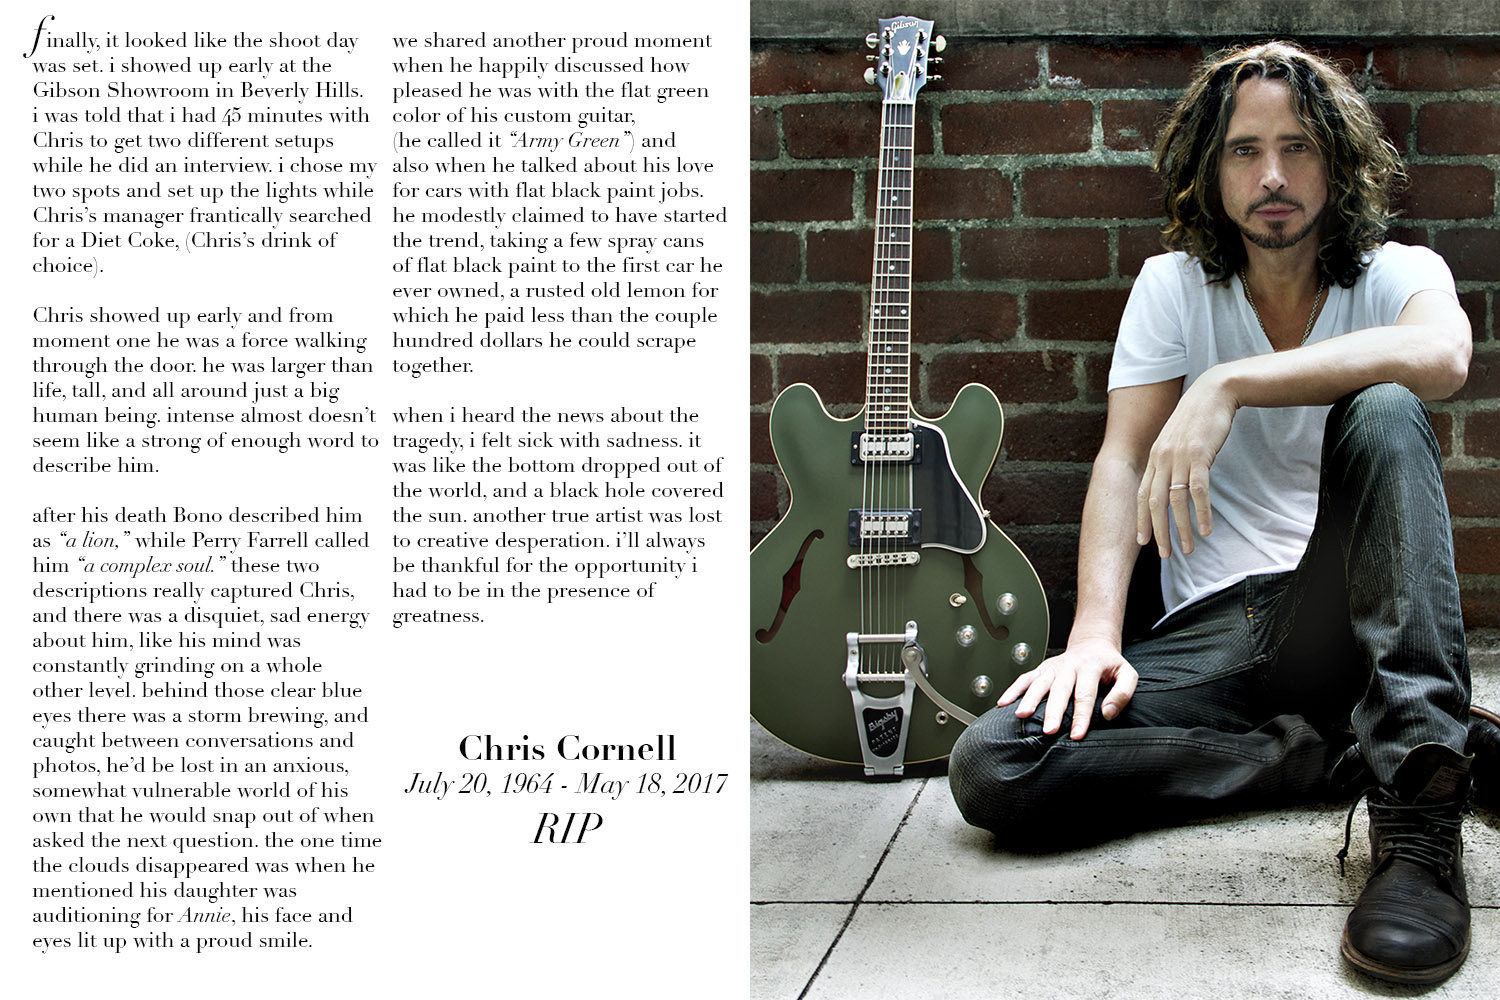 un4gettablephotodaymm-chris-cornell-portrait-beverly-hills-mark-maryanovich-2.jpg